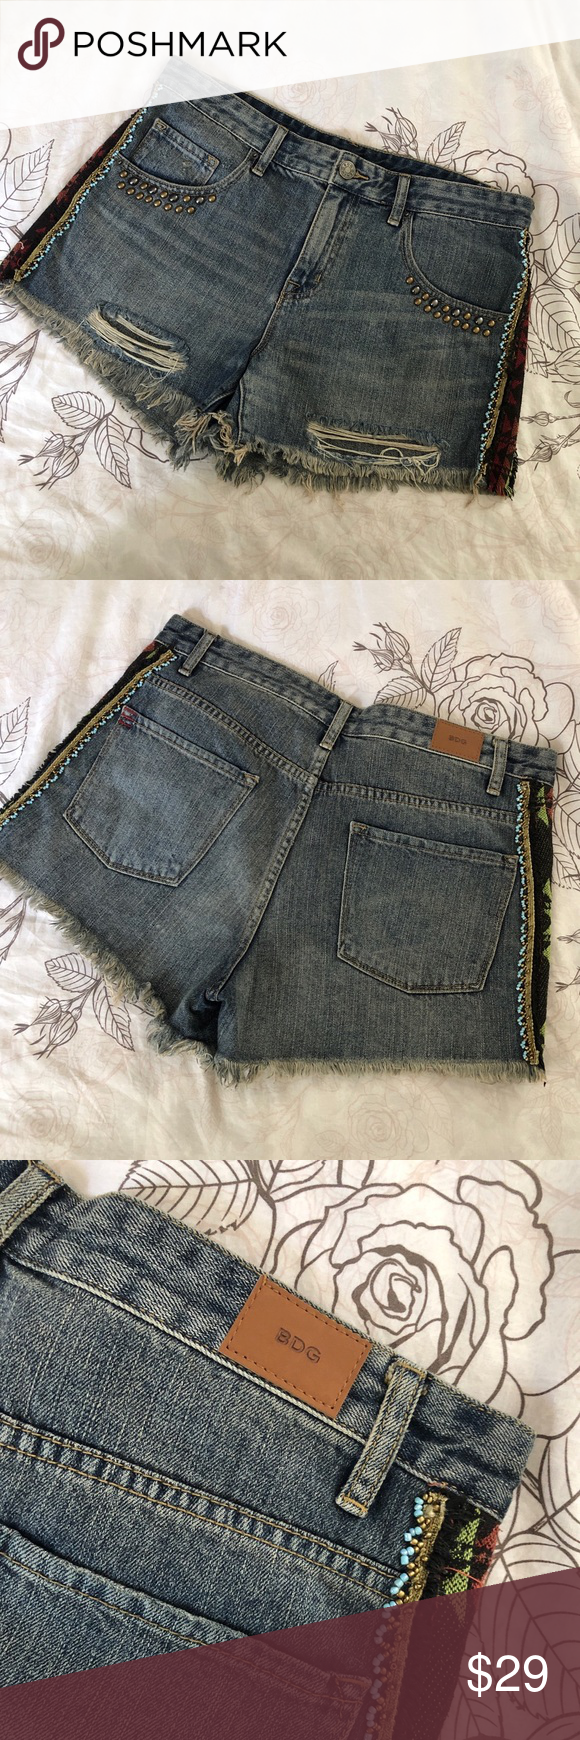 Urban Outfitters cutoff denim shorts - size 30 UO denim cutoff shorts with studs and beaded and embroidery detail. Barely worn, perfect condition. Size 30 Urban Outfitters Shorts Jean Shorts #denimcutoffshorts